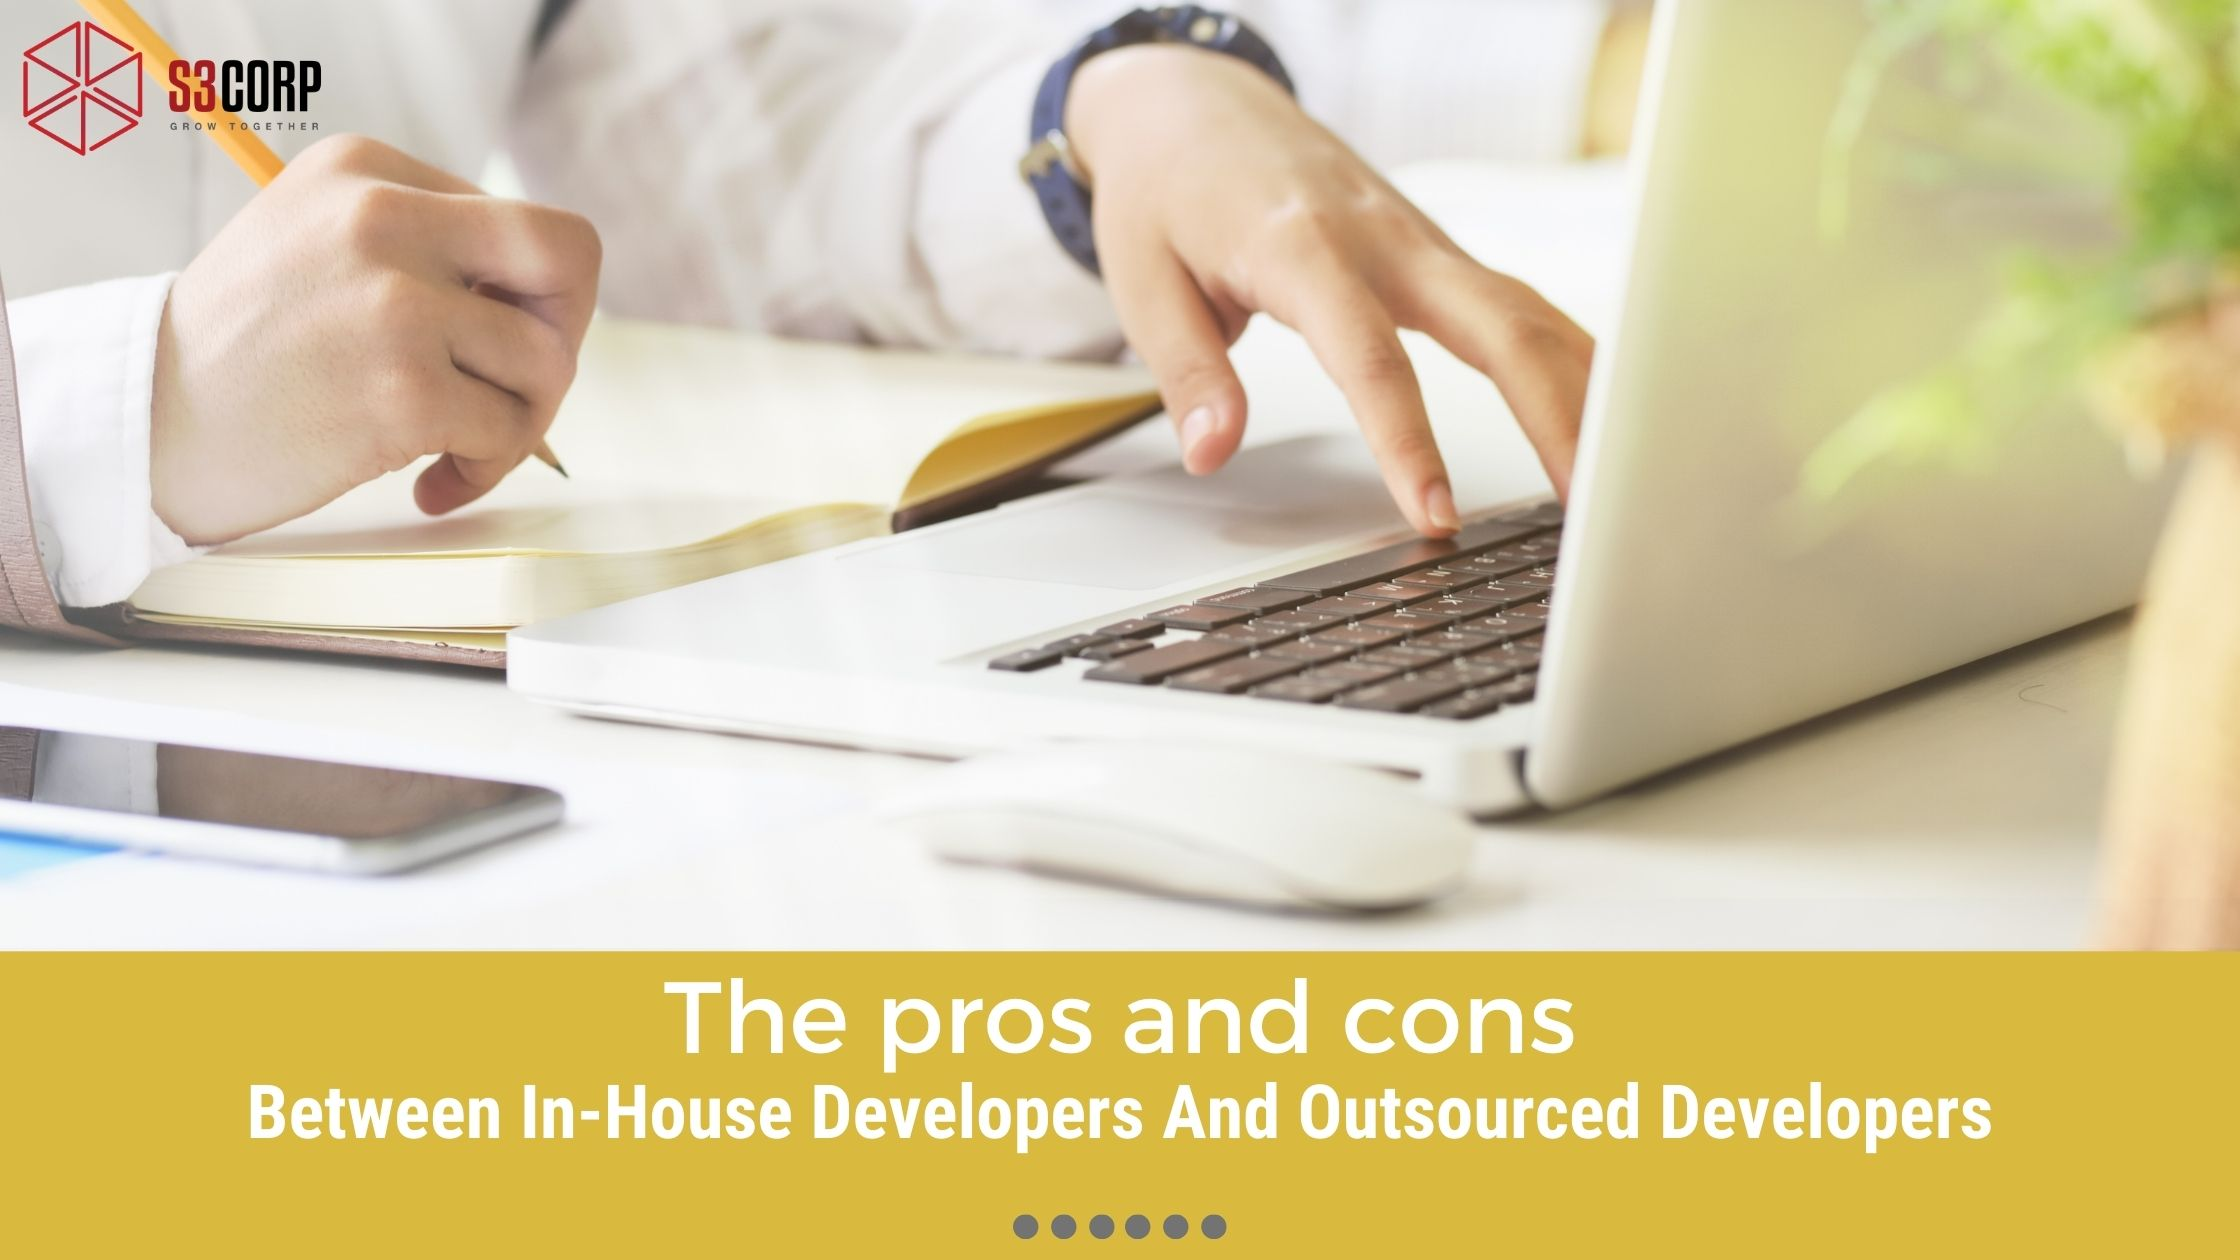 In-House Developers And Outsourced Developers: The pros and cons